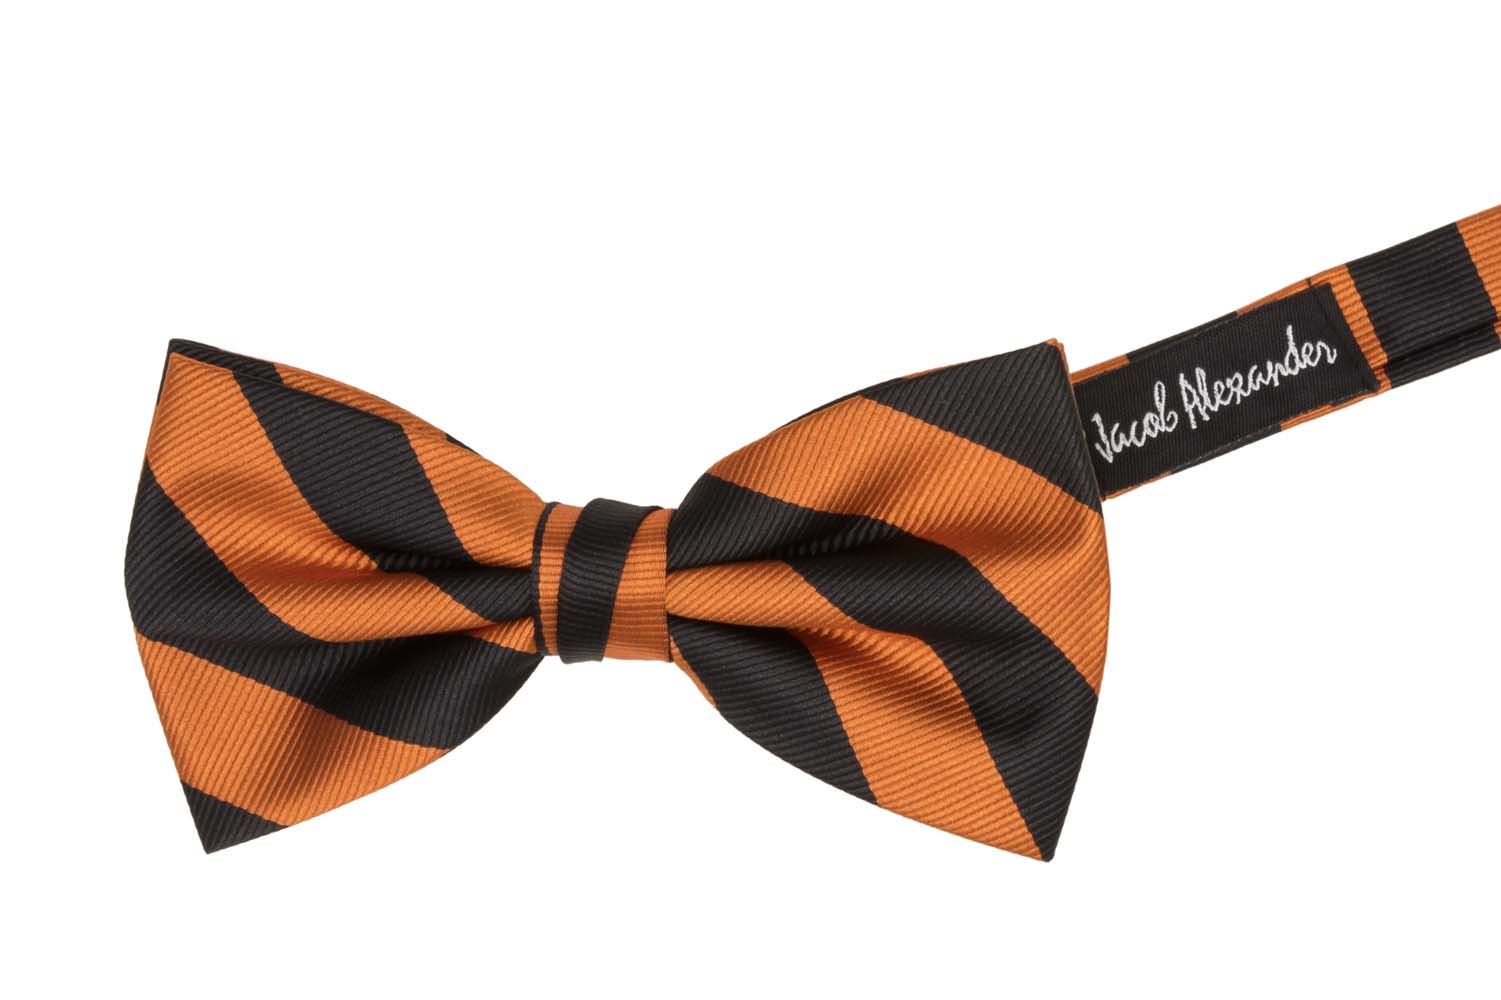 Jacob-Alexander-Stripe-Woven-Men-039-s-College-Striped-Pretied-Bowtie thumbnail 10